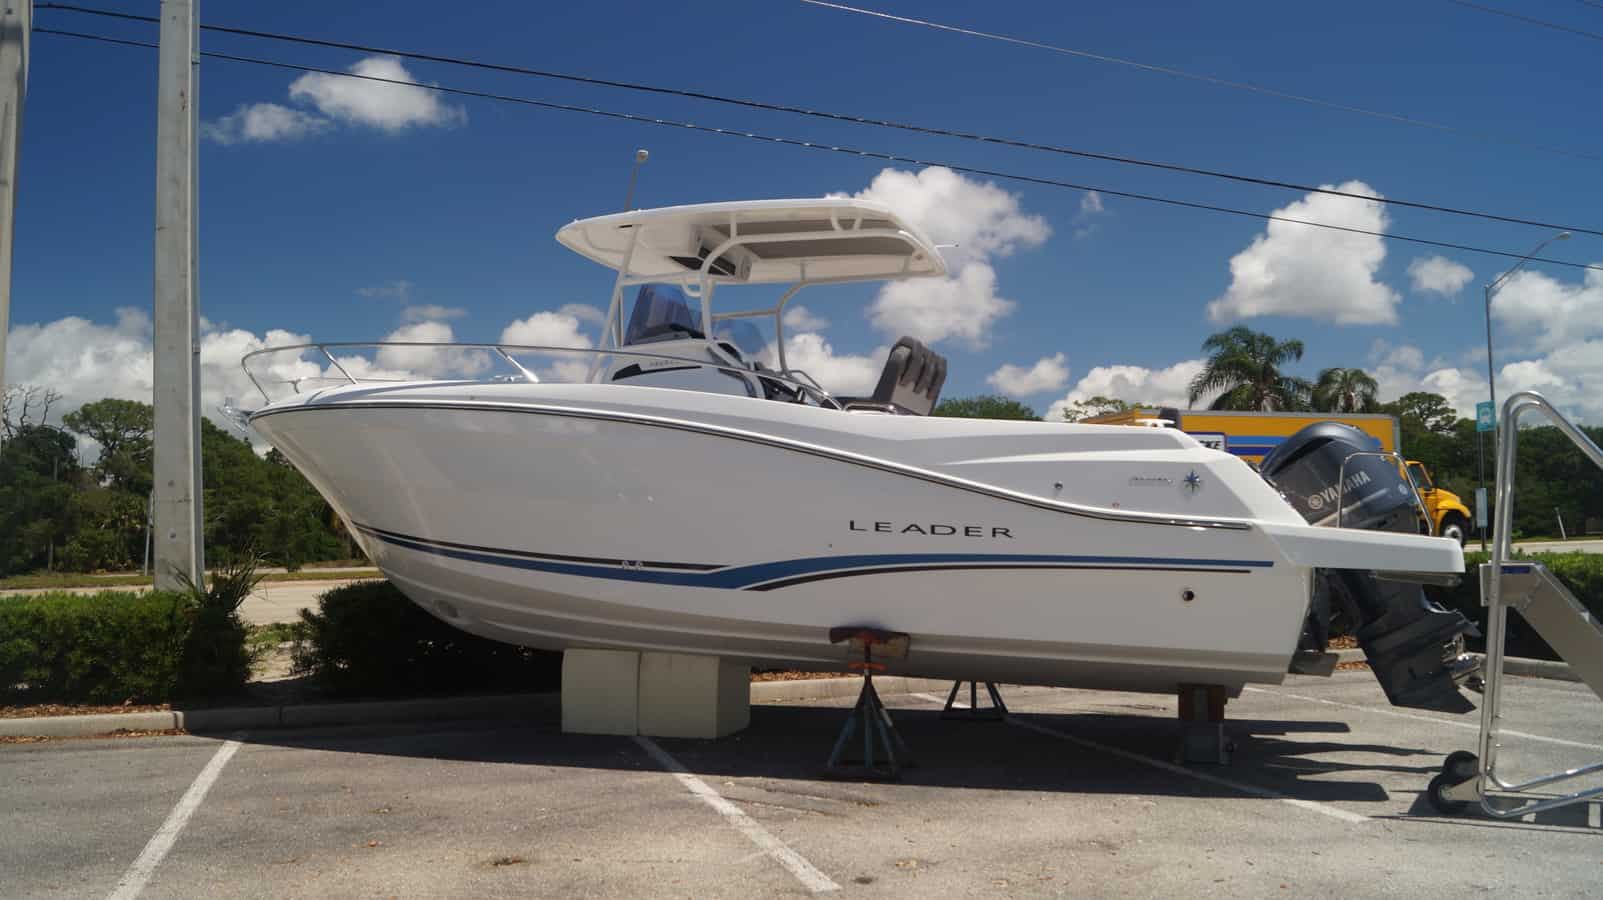 NEW 2019 Jeanneau Leader 9.0 CC - Sara Bay Marina